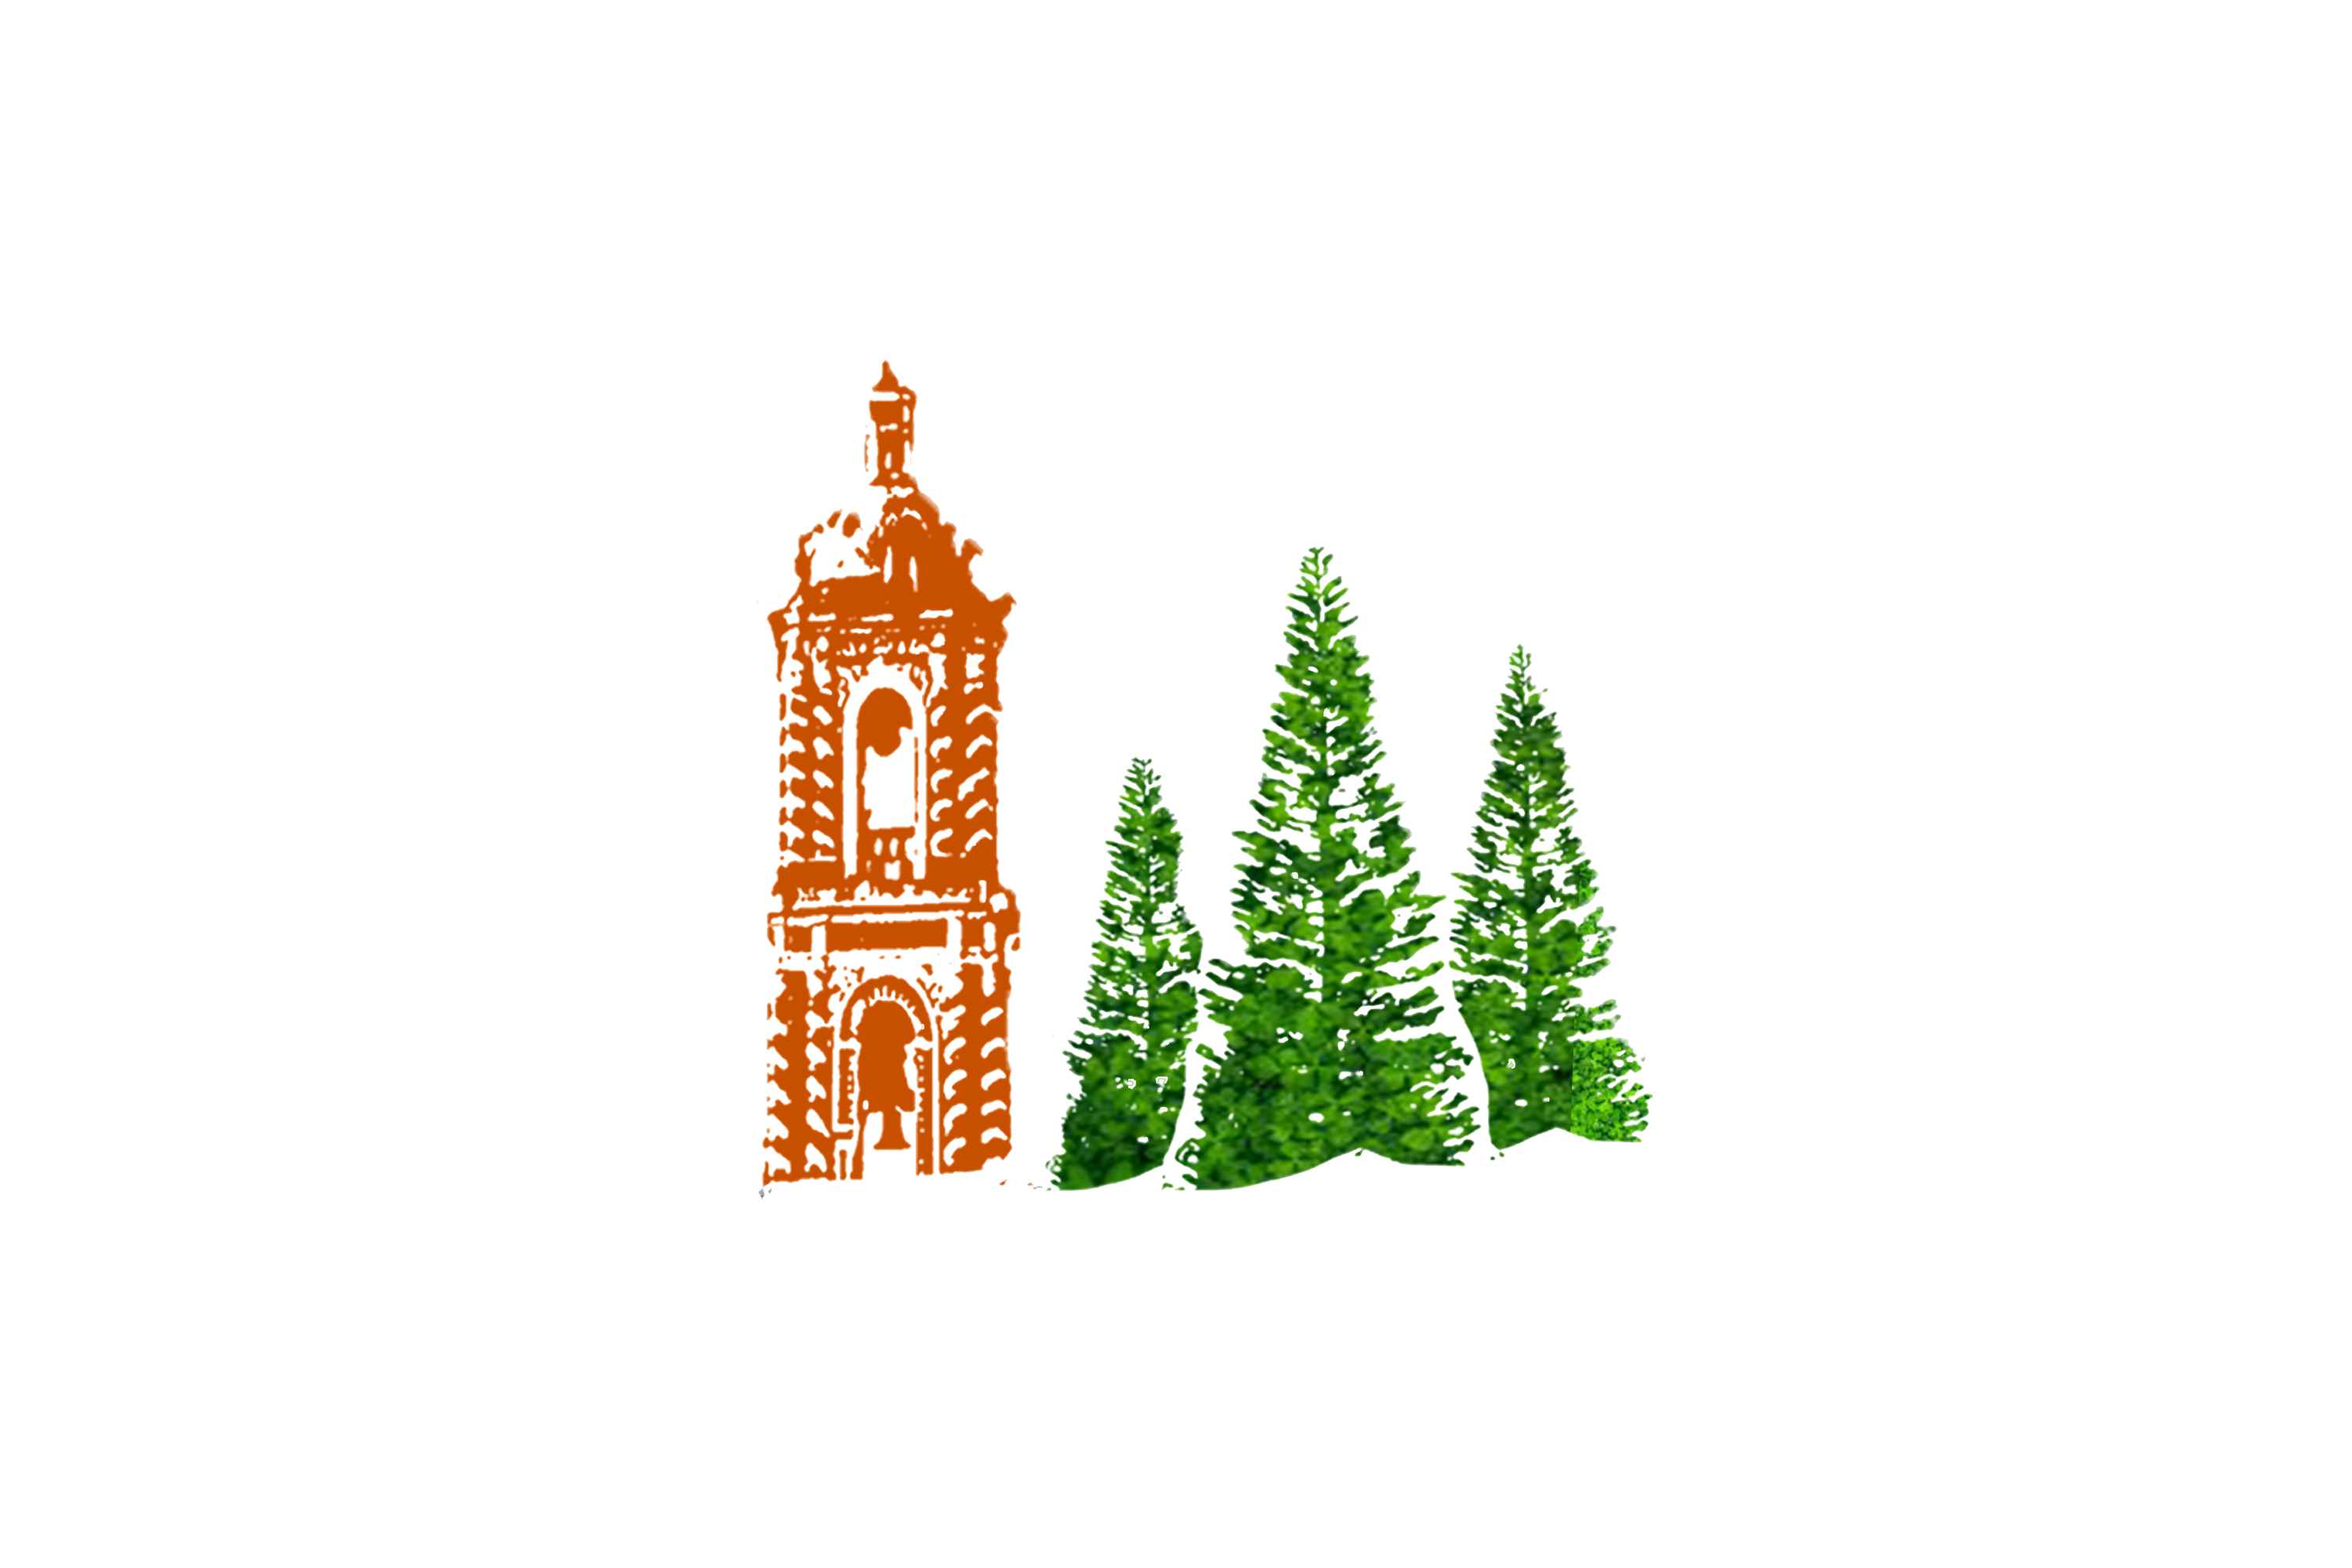 Tower & Trees